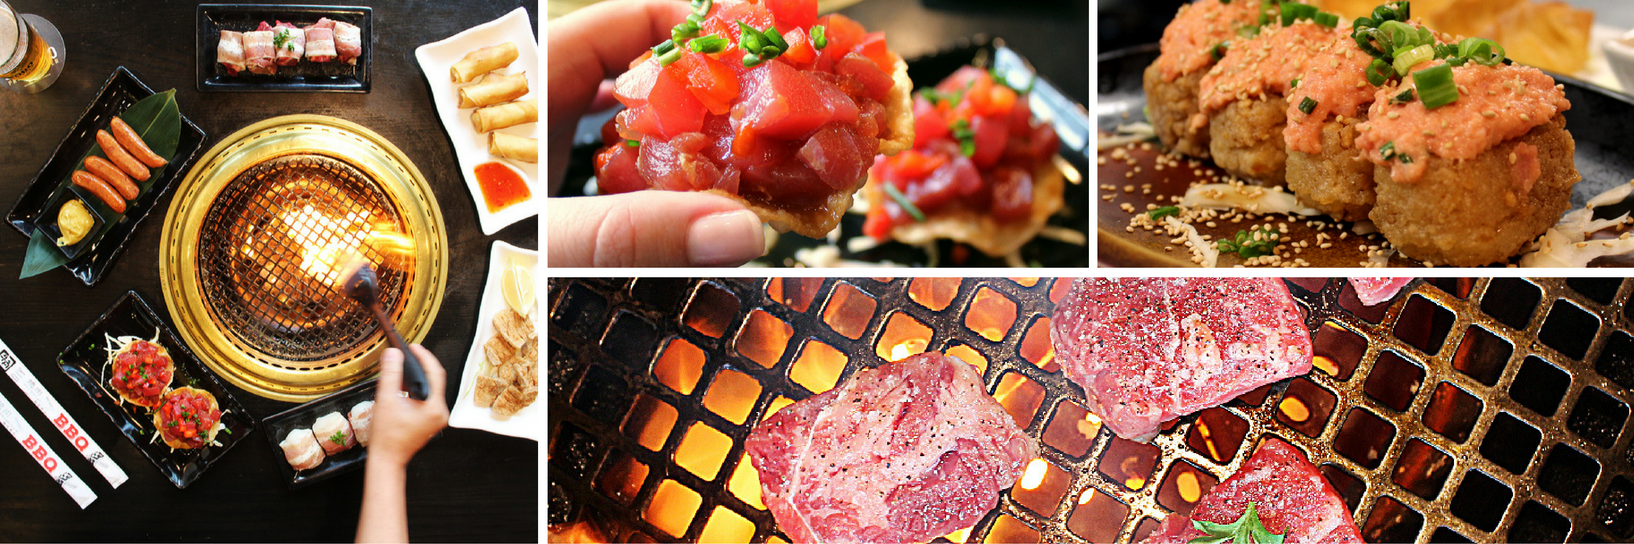 gyu-kaku-japanese-belle-strategies-social-media-marketing